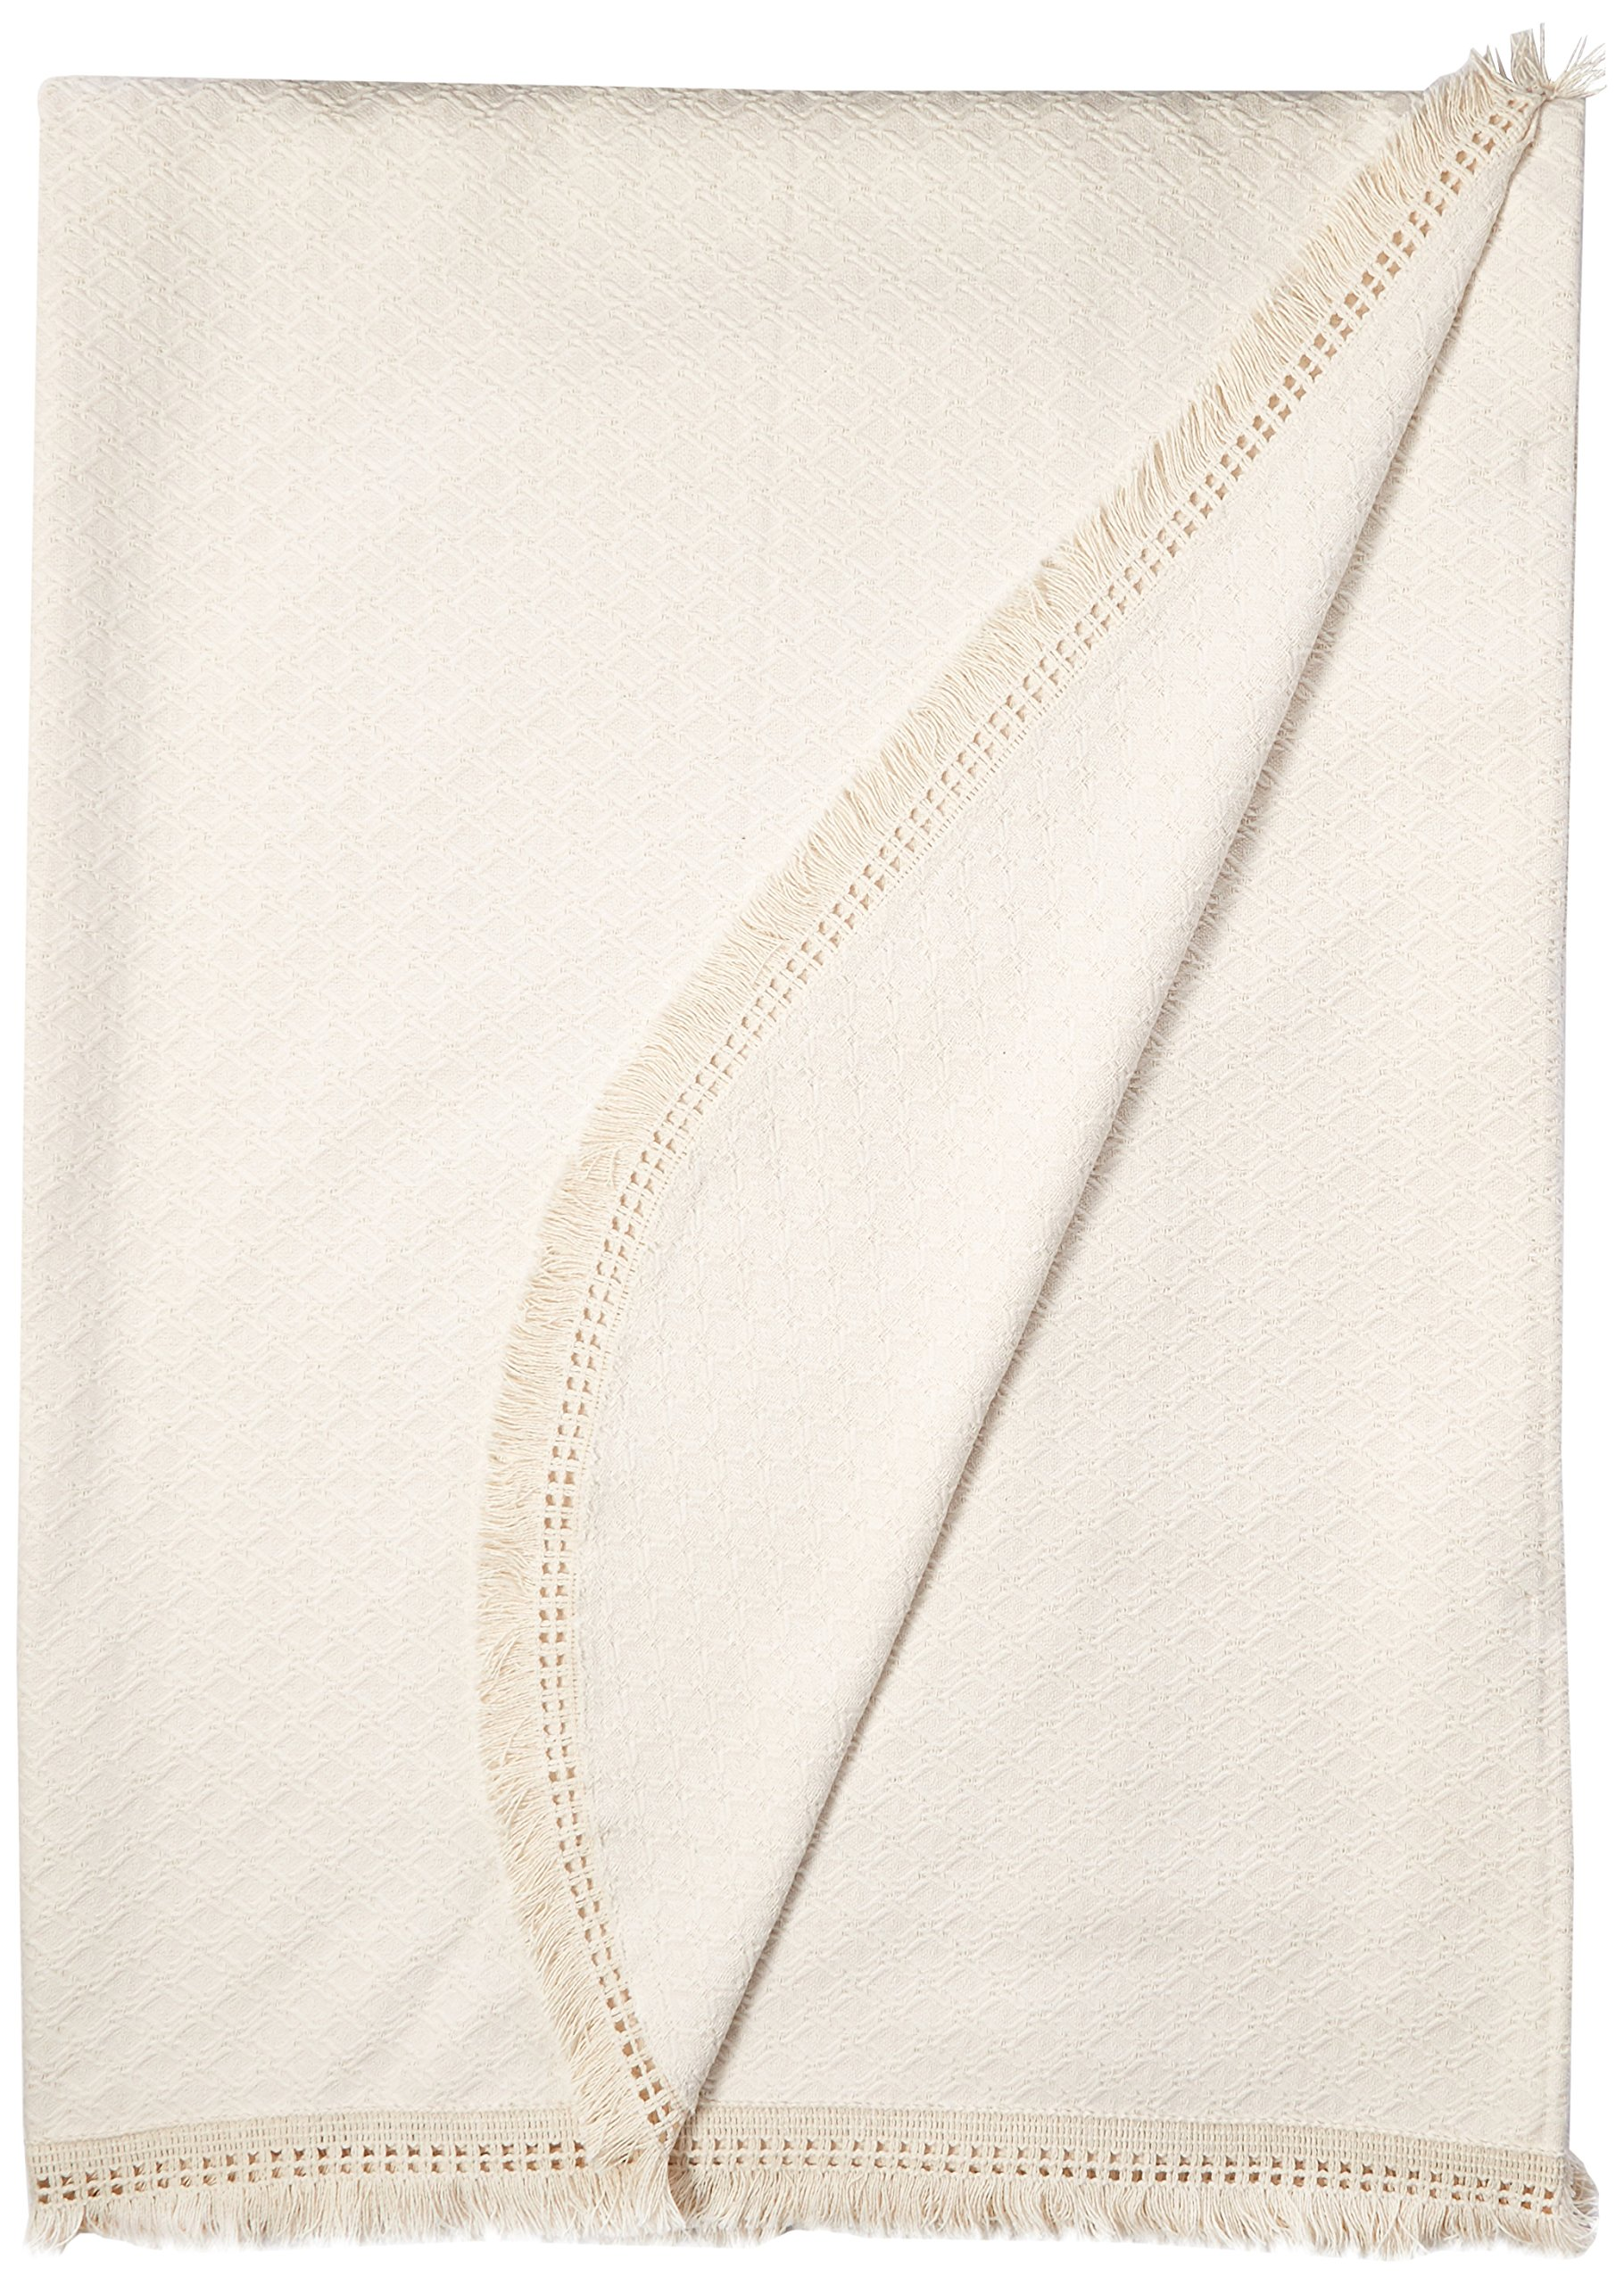 Lamont Limited Home Bedspread, King, Ivory,Woven Jacquard